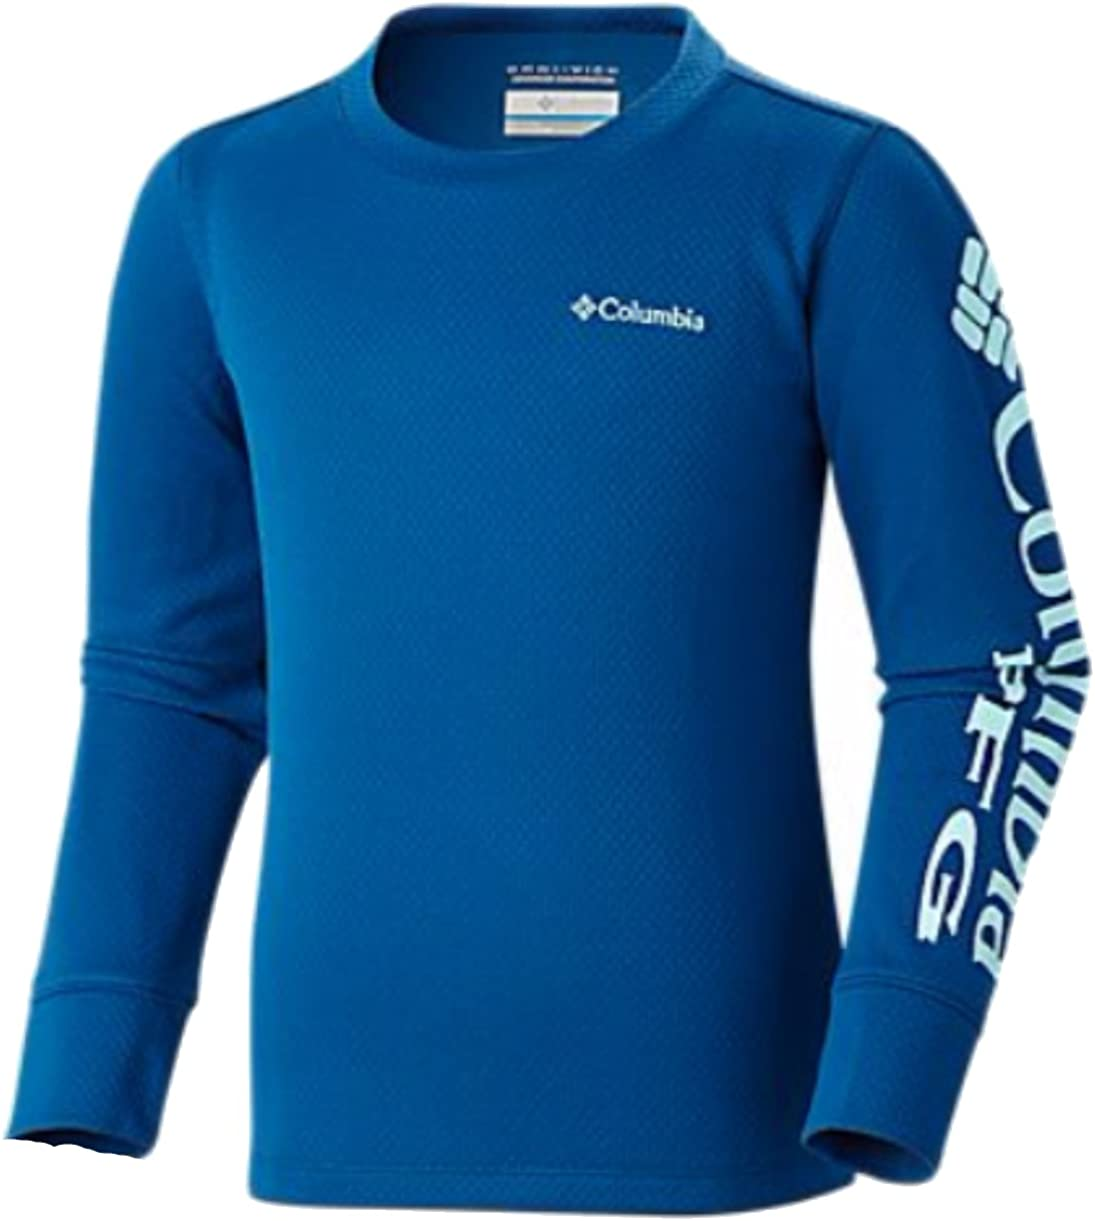 Fixed price for sale Columbia Sportswear Boys Winter Tech Tee High material Blur